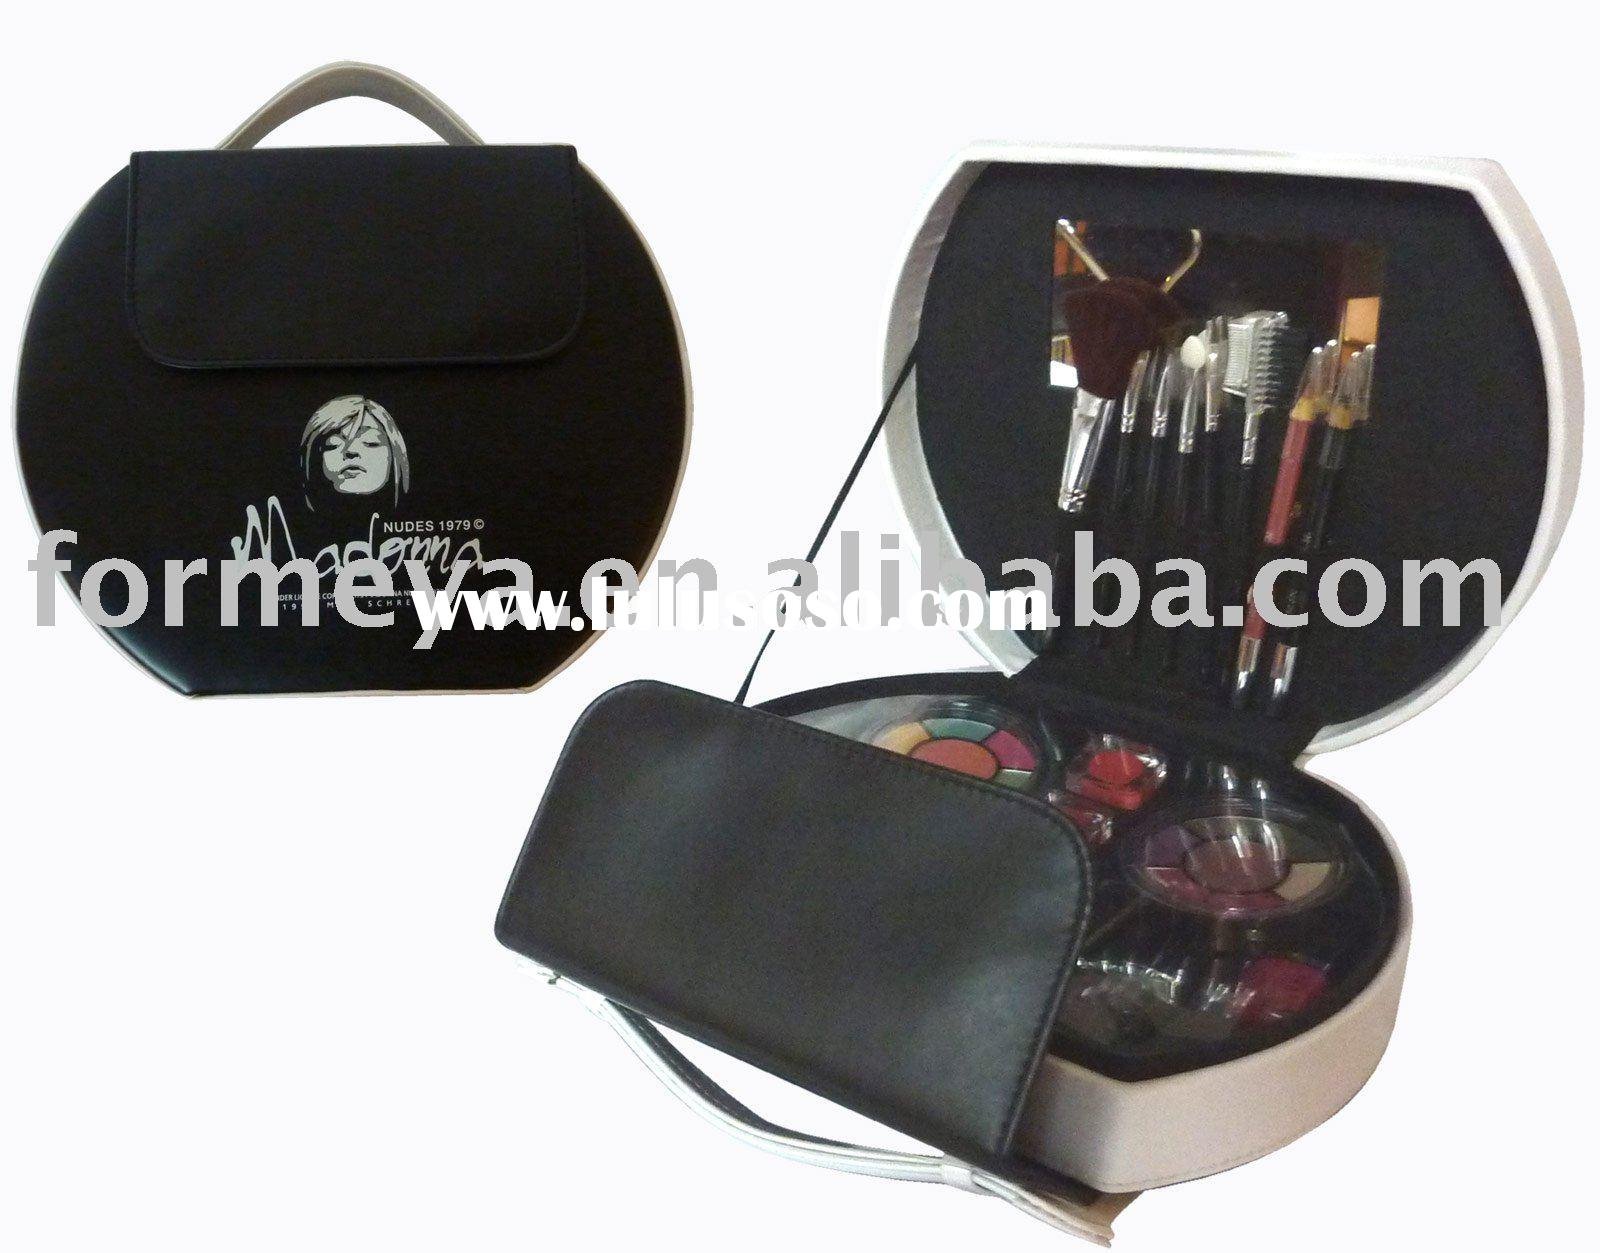 PVC cosmetic bag and case